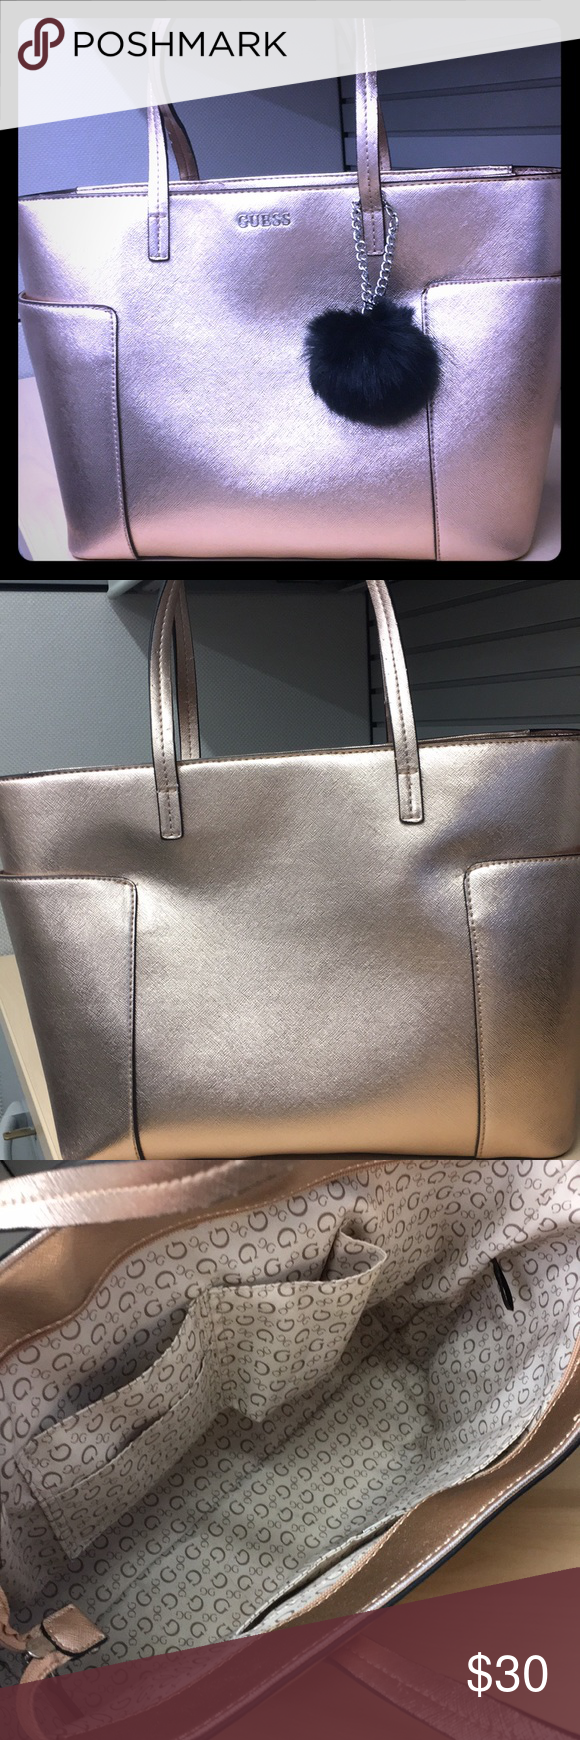 ed11c7076f5 Rose Gold Guess Tote Very pretty rose gold Guess tote bag. It s rose like in